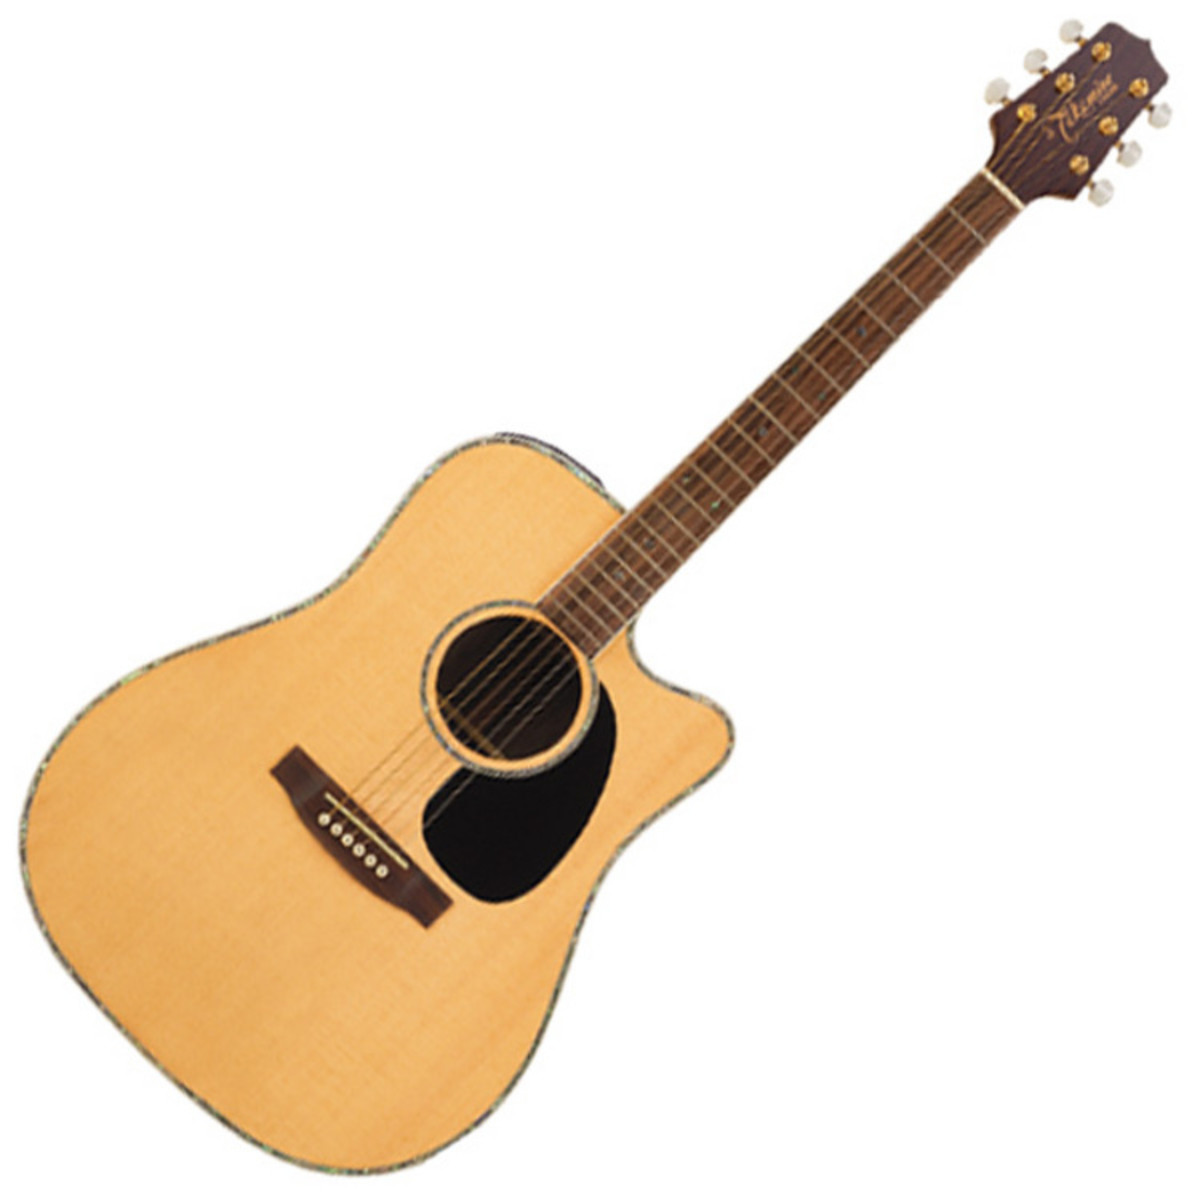 Takamine dating serial number